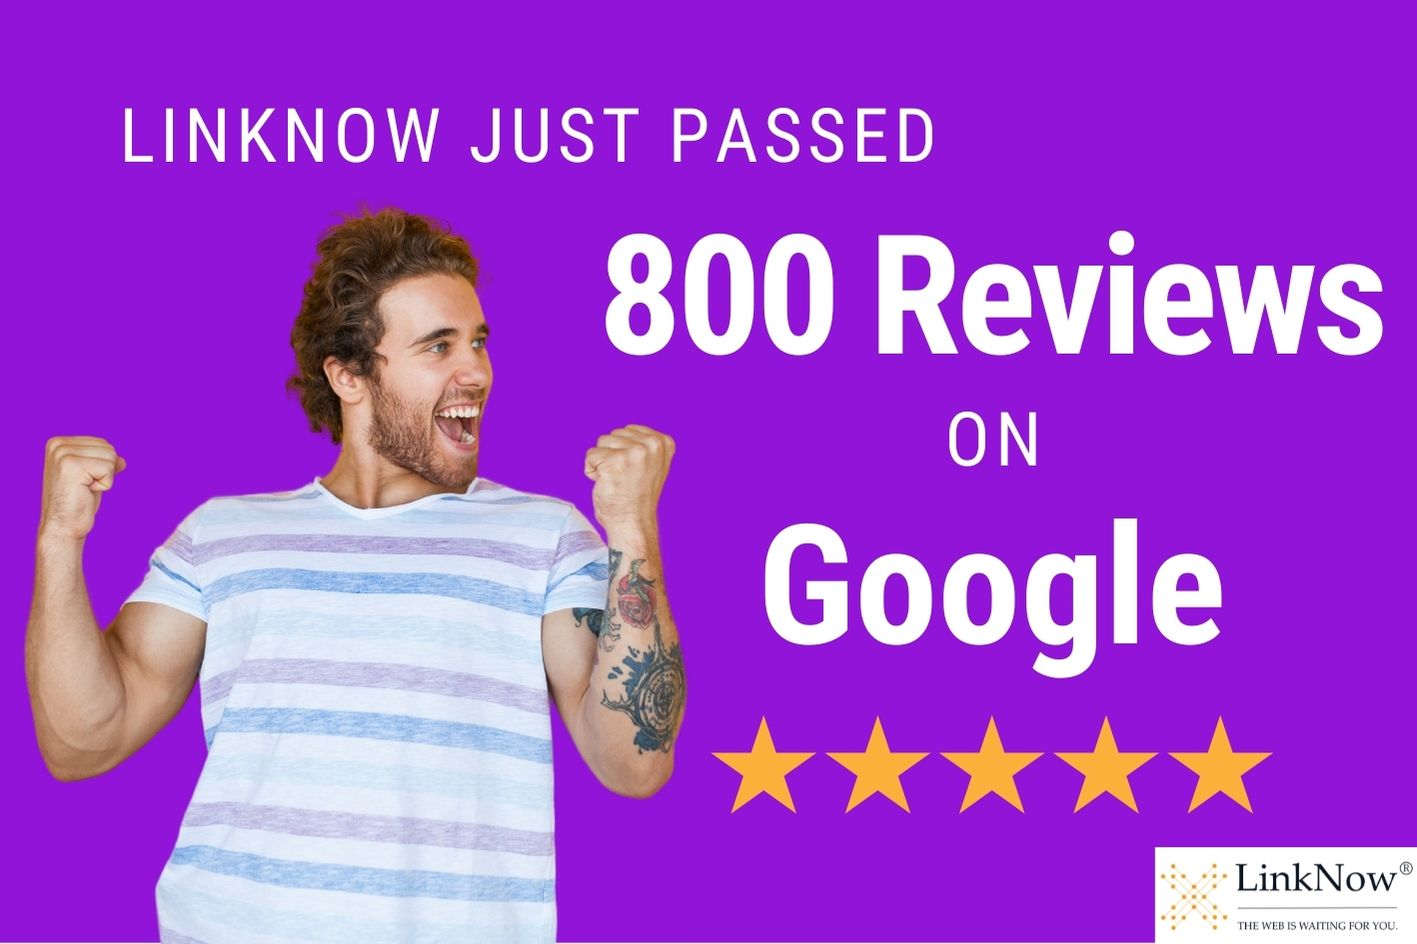 LinkNow just passed 800 reviews on Google.